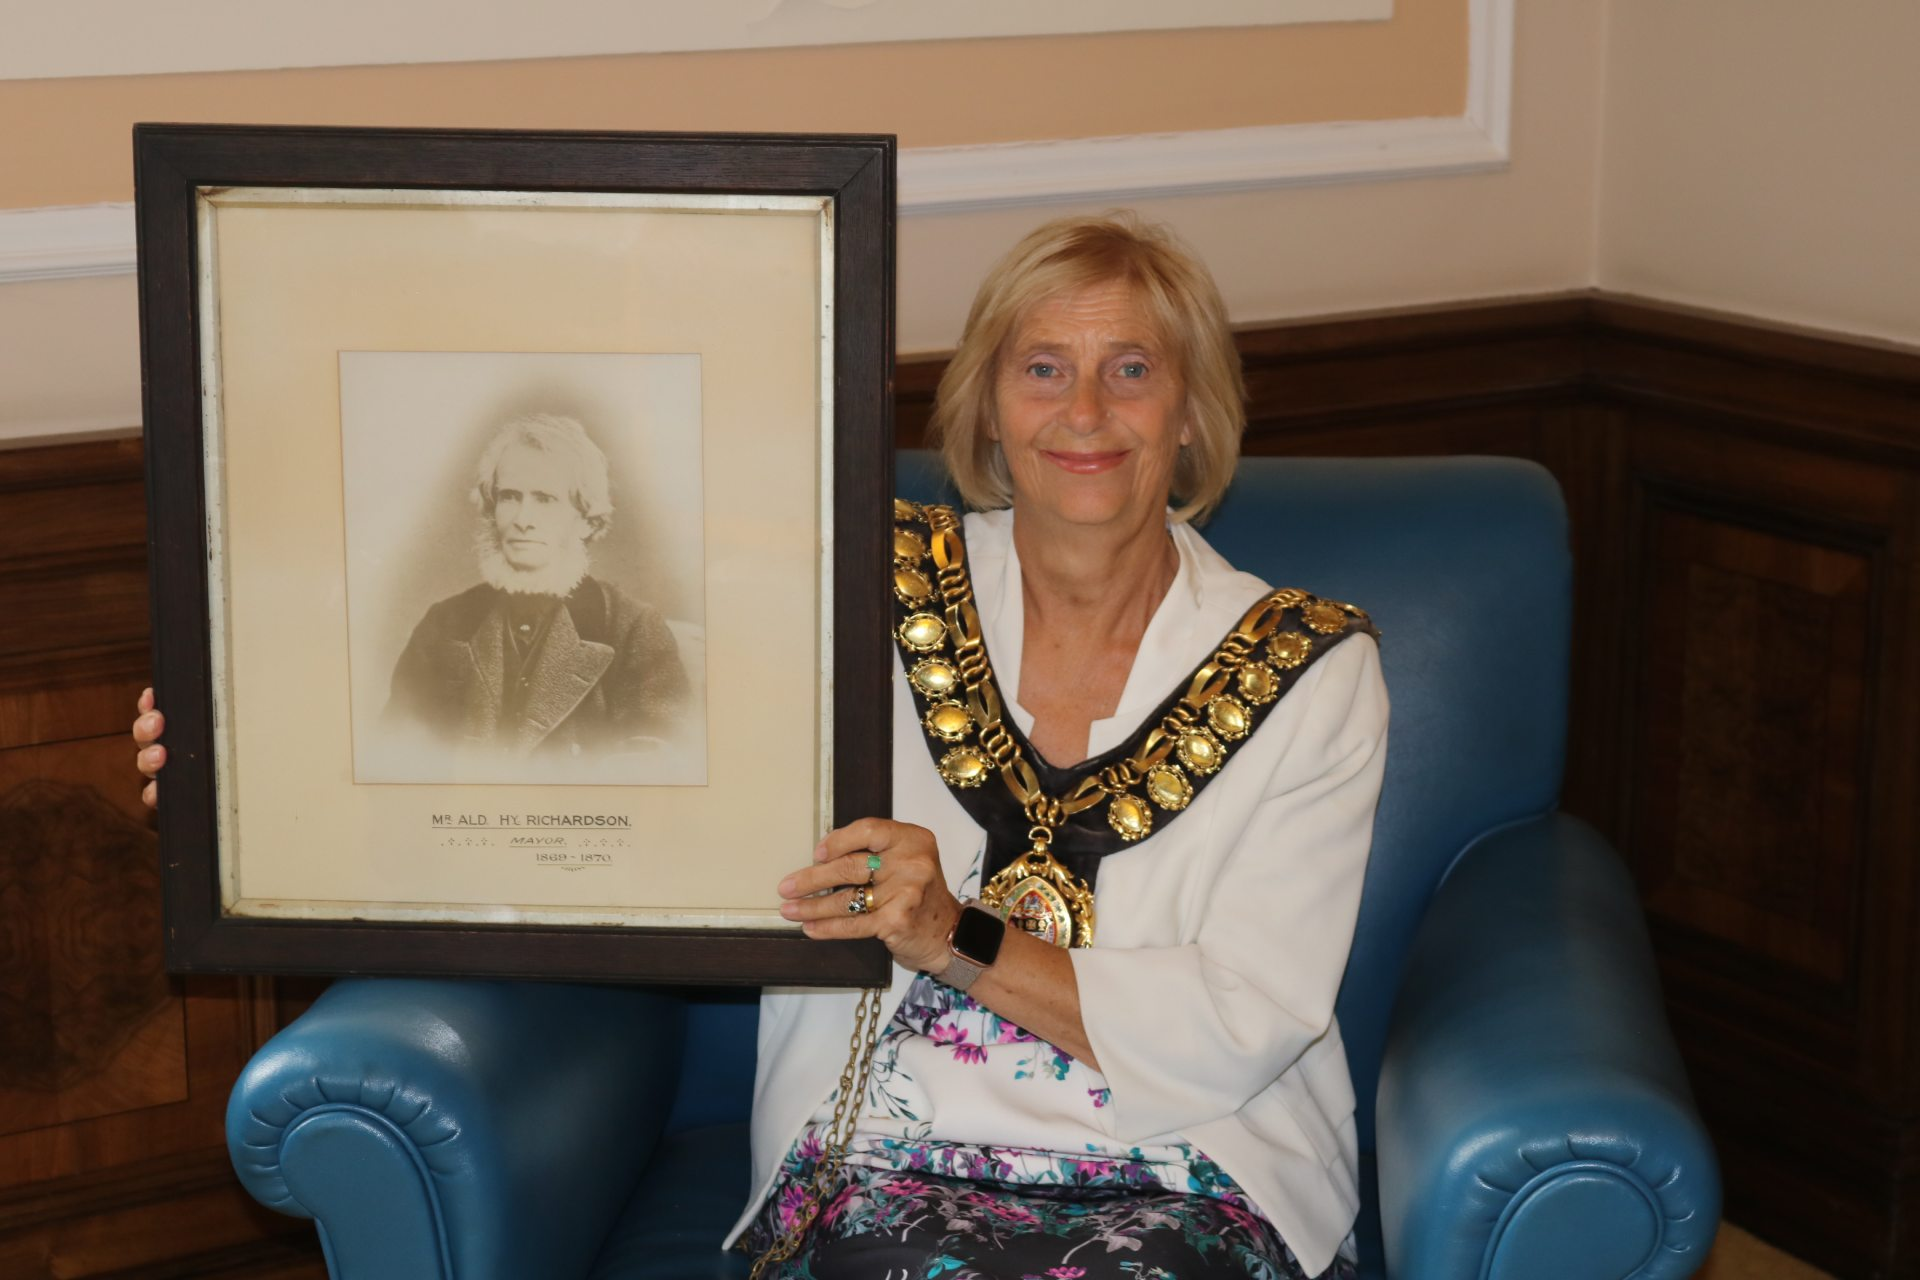 150 years Barnsley Mayor - Mayor holding a photo of an old person